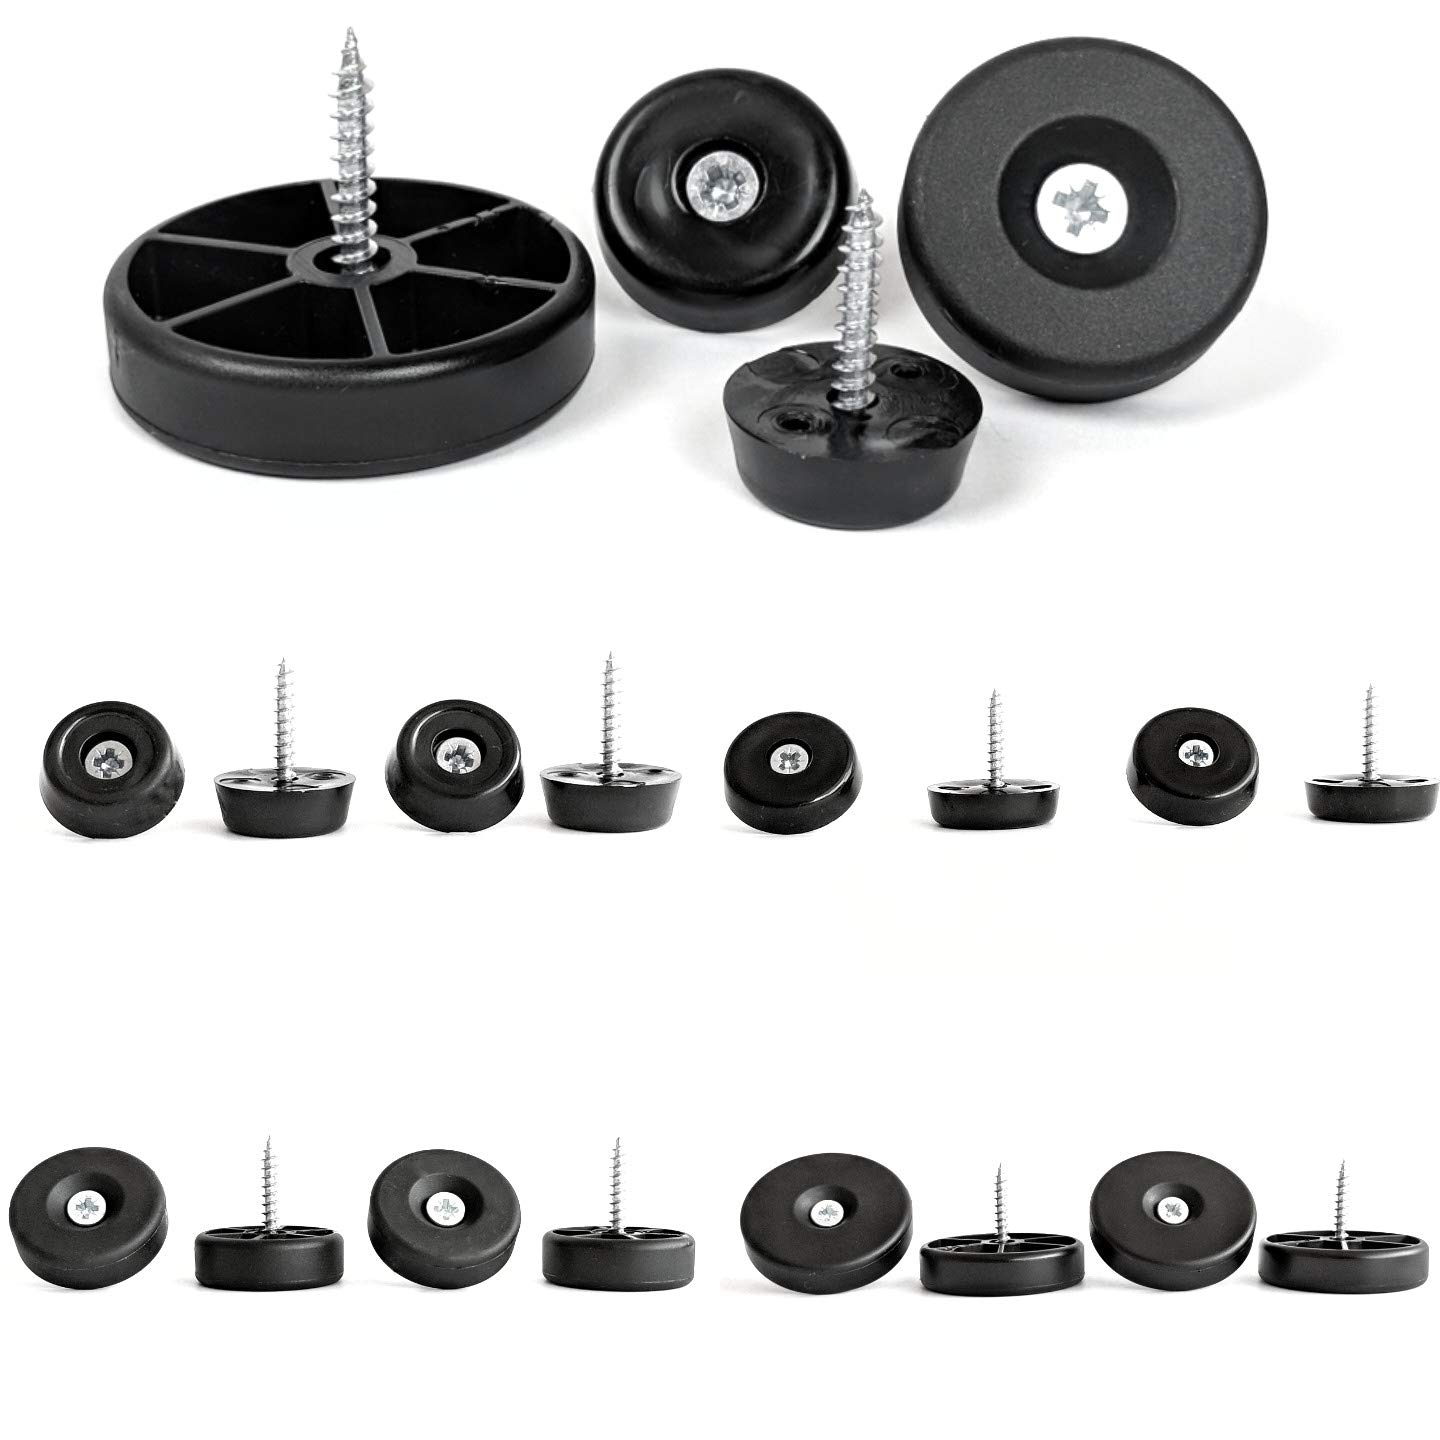 Furniture Gliders. Screw in Sliders Risers Floor Protectors for Ceramic Tile Natural Stone Vinyl Concrete and Similar Floors, Available in 21mm 25mm 30mm or 40mm Diameter Made in Germany… Keay vital parts